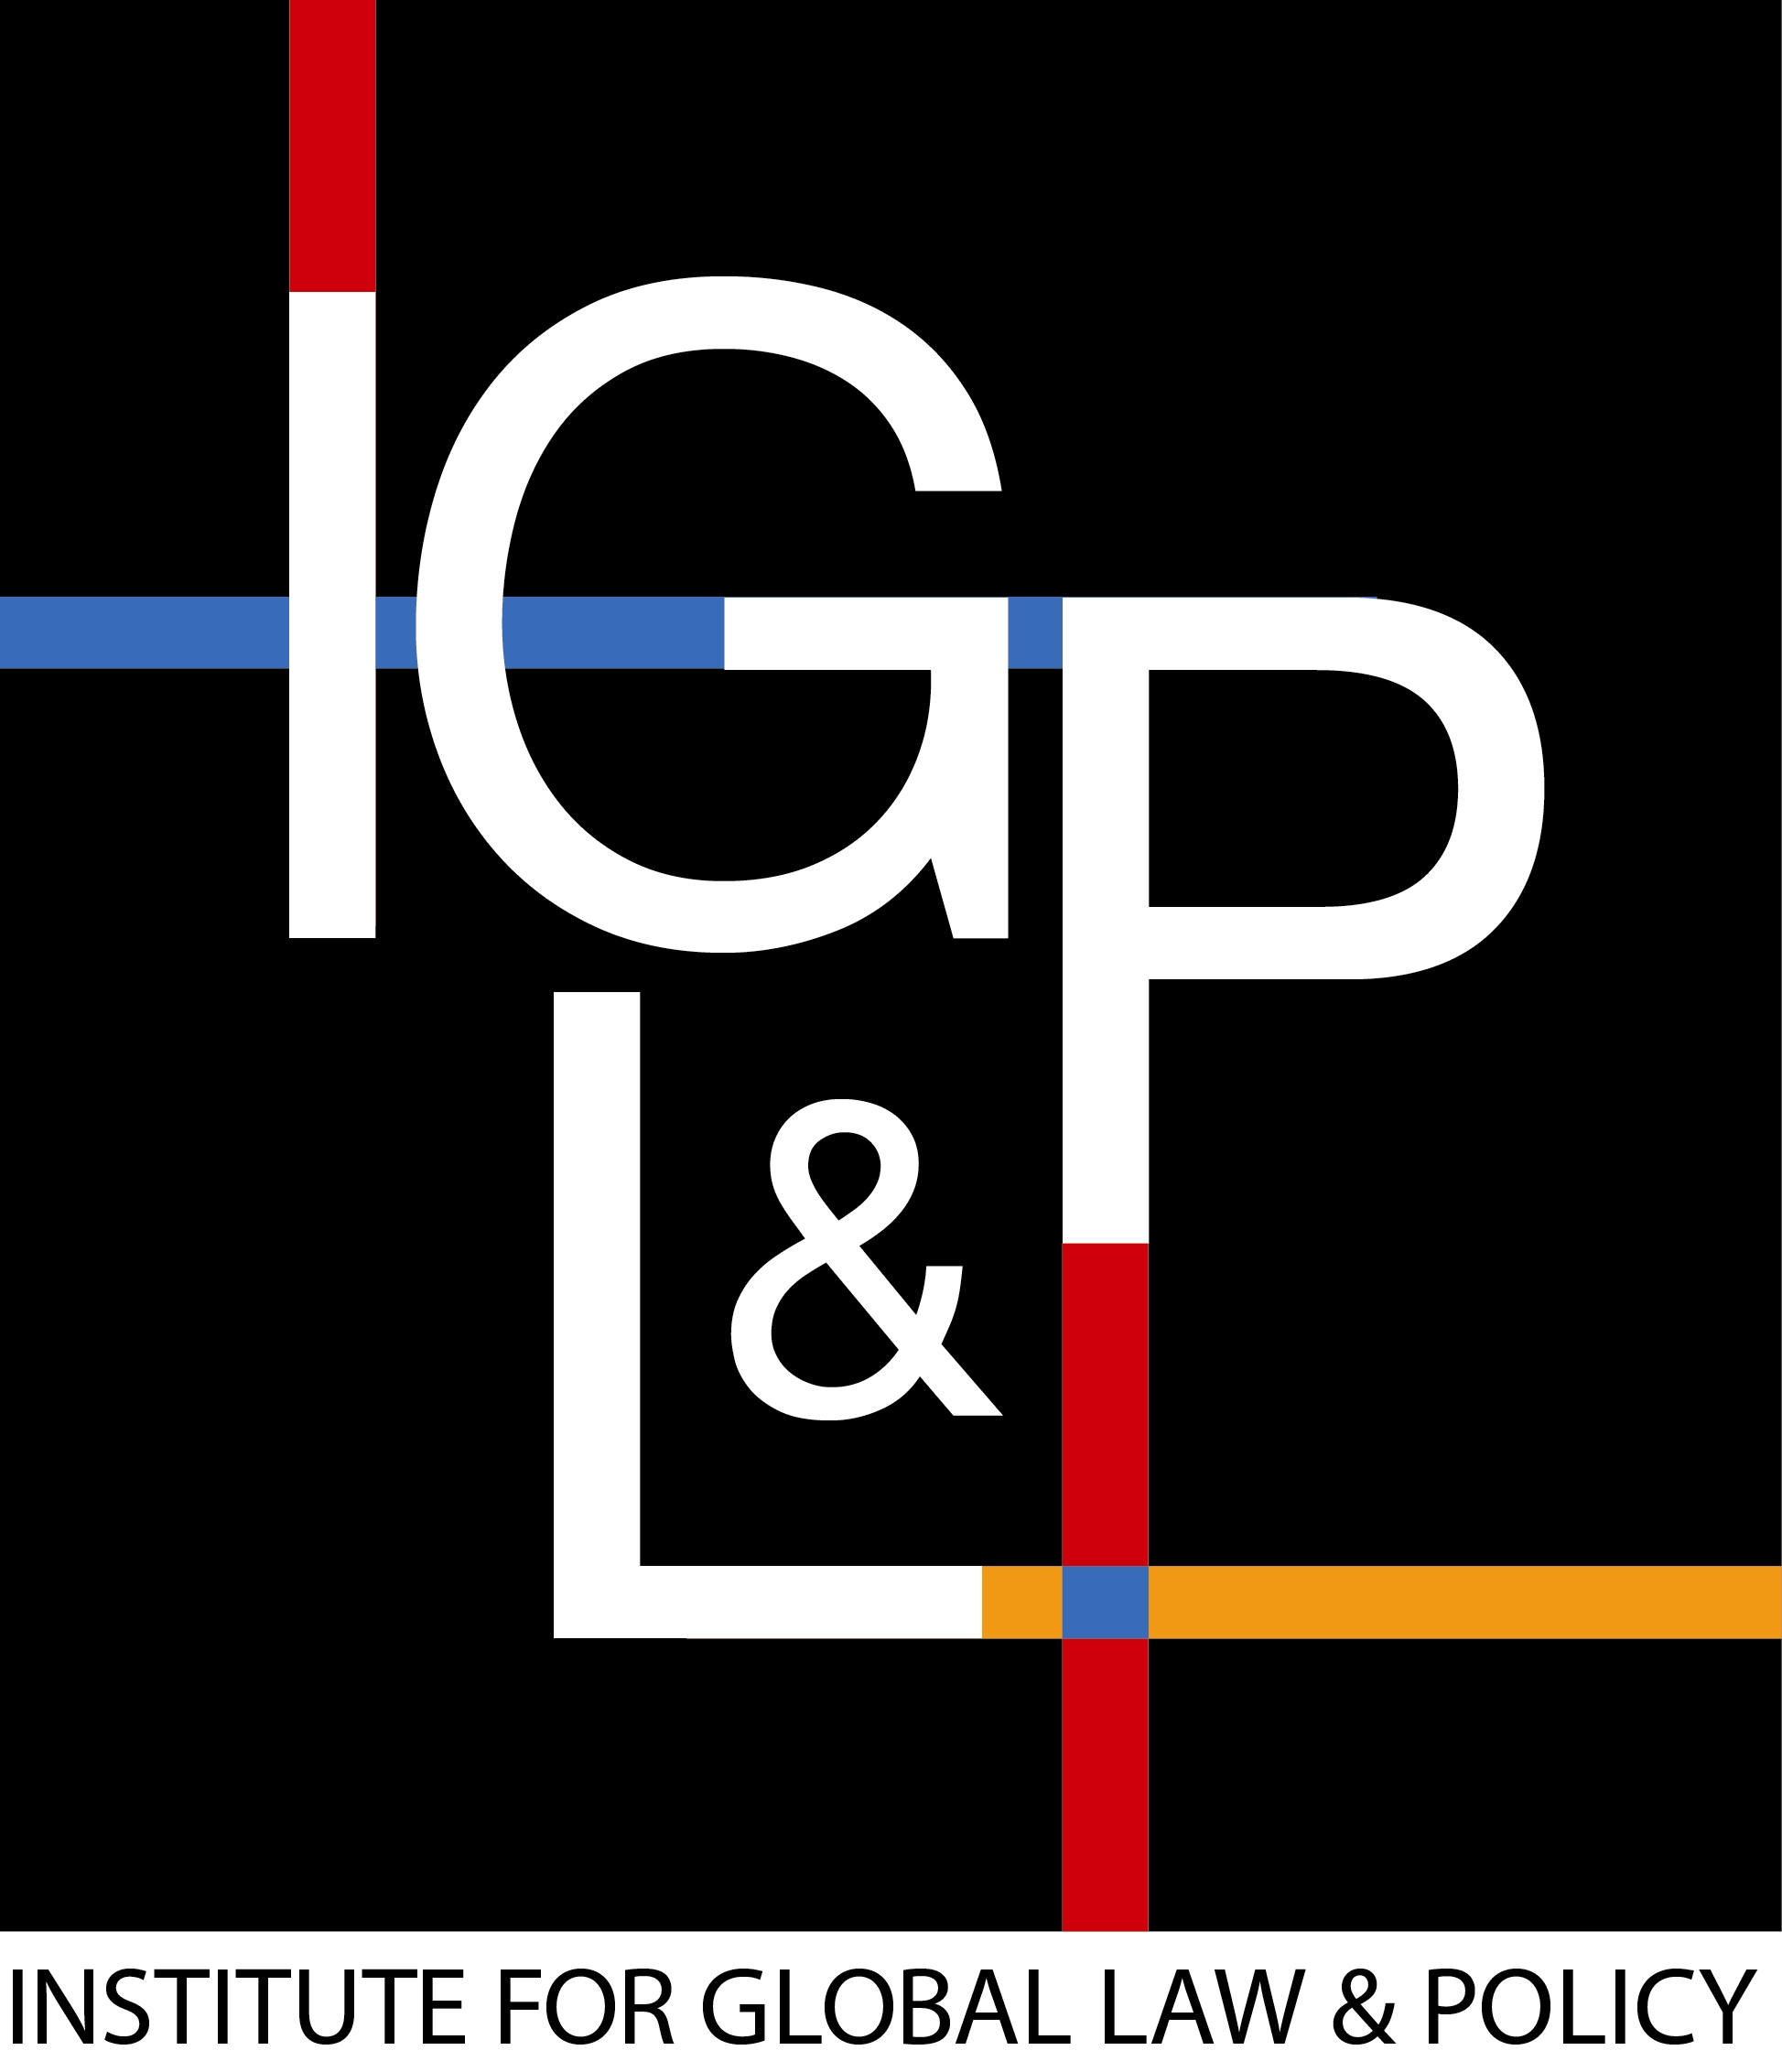 Global Law and Policy (IGLP) at Harvard Law School's 2015 Workshop